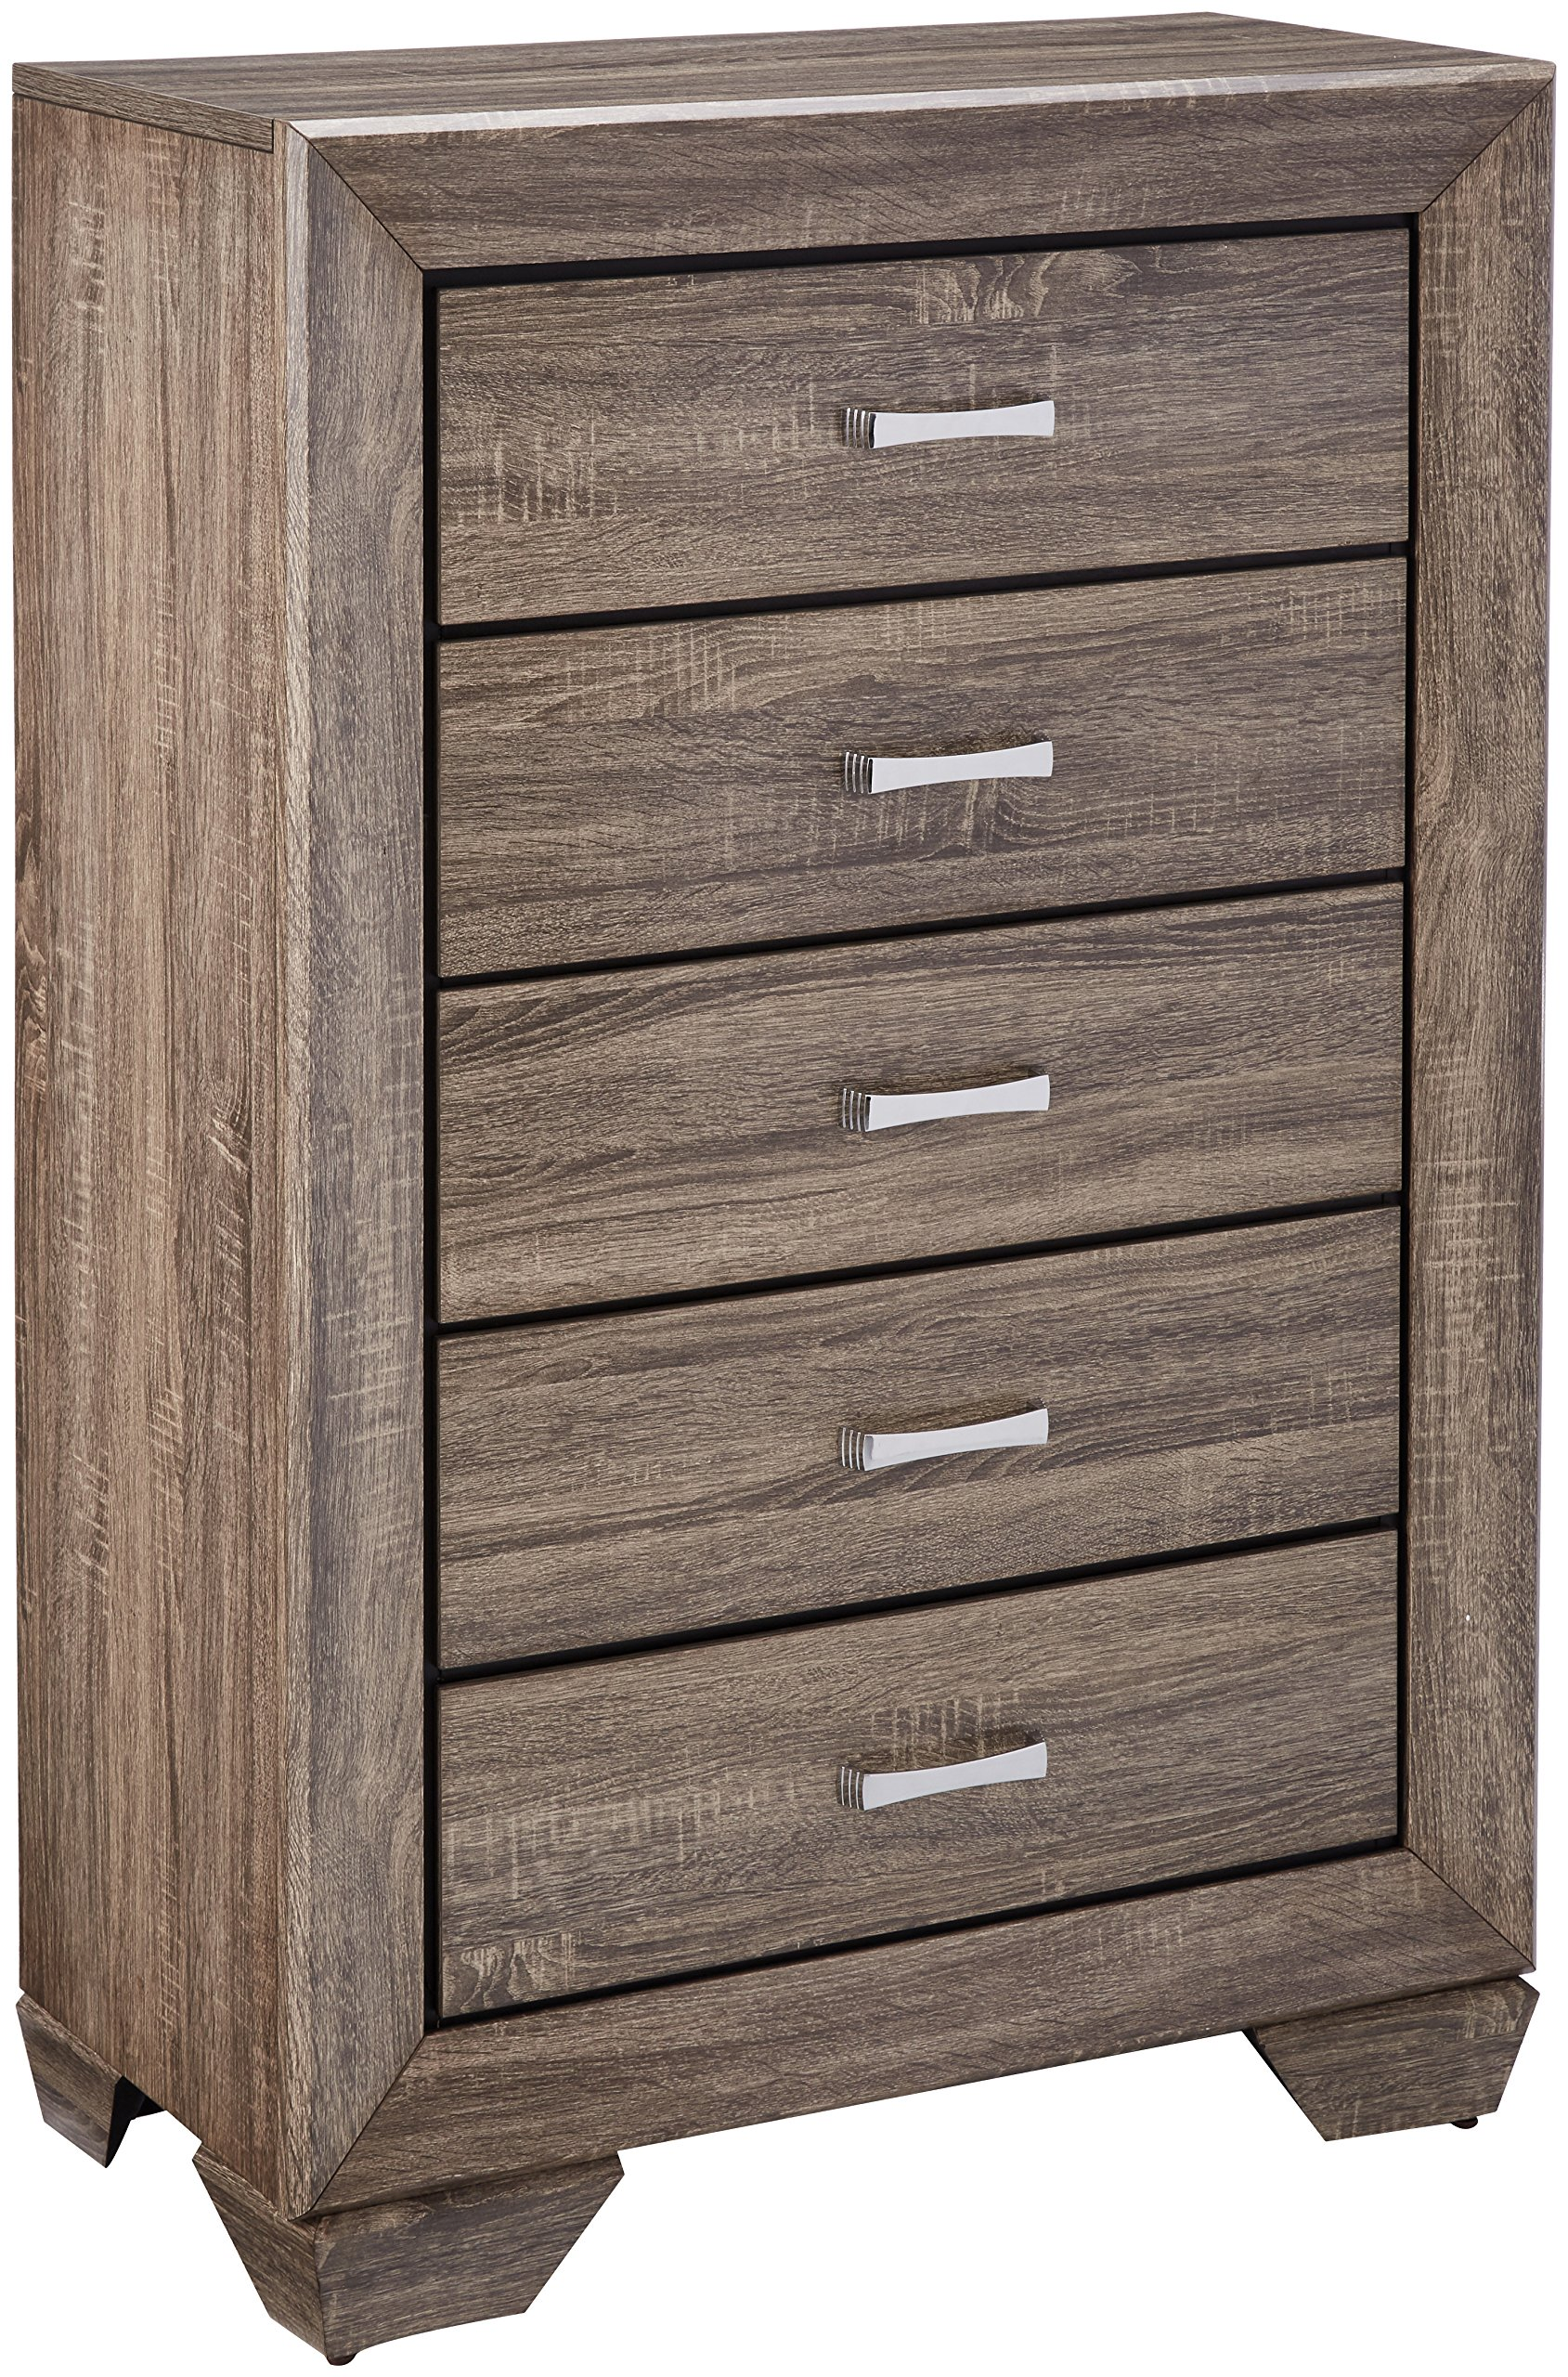 Coaster Home Furnishings 204195 Kauffman Collection Chest